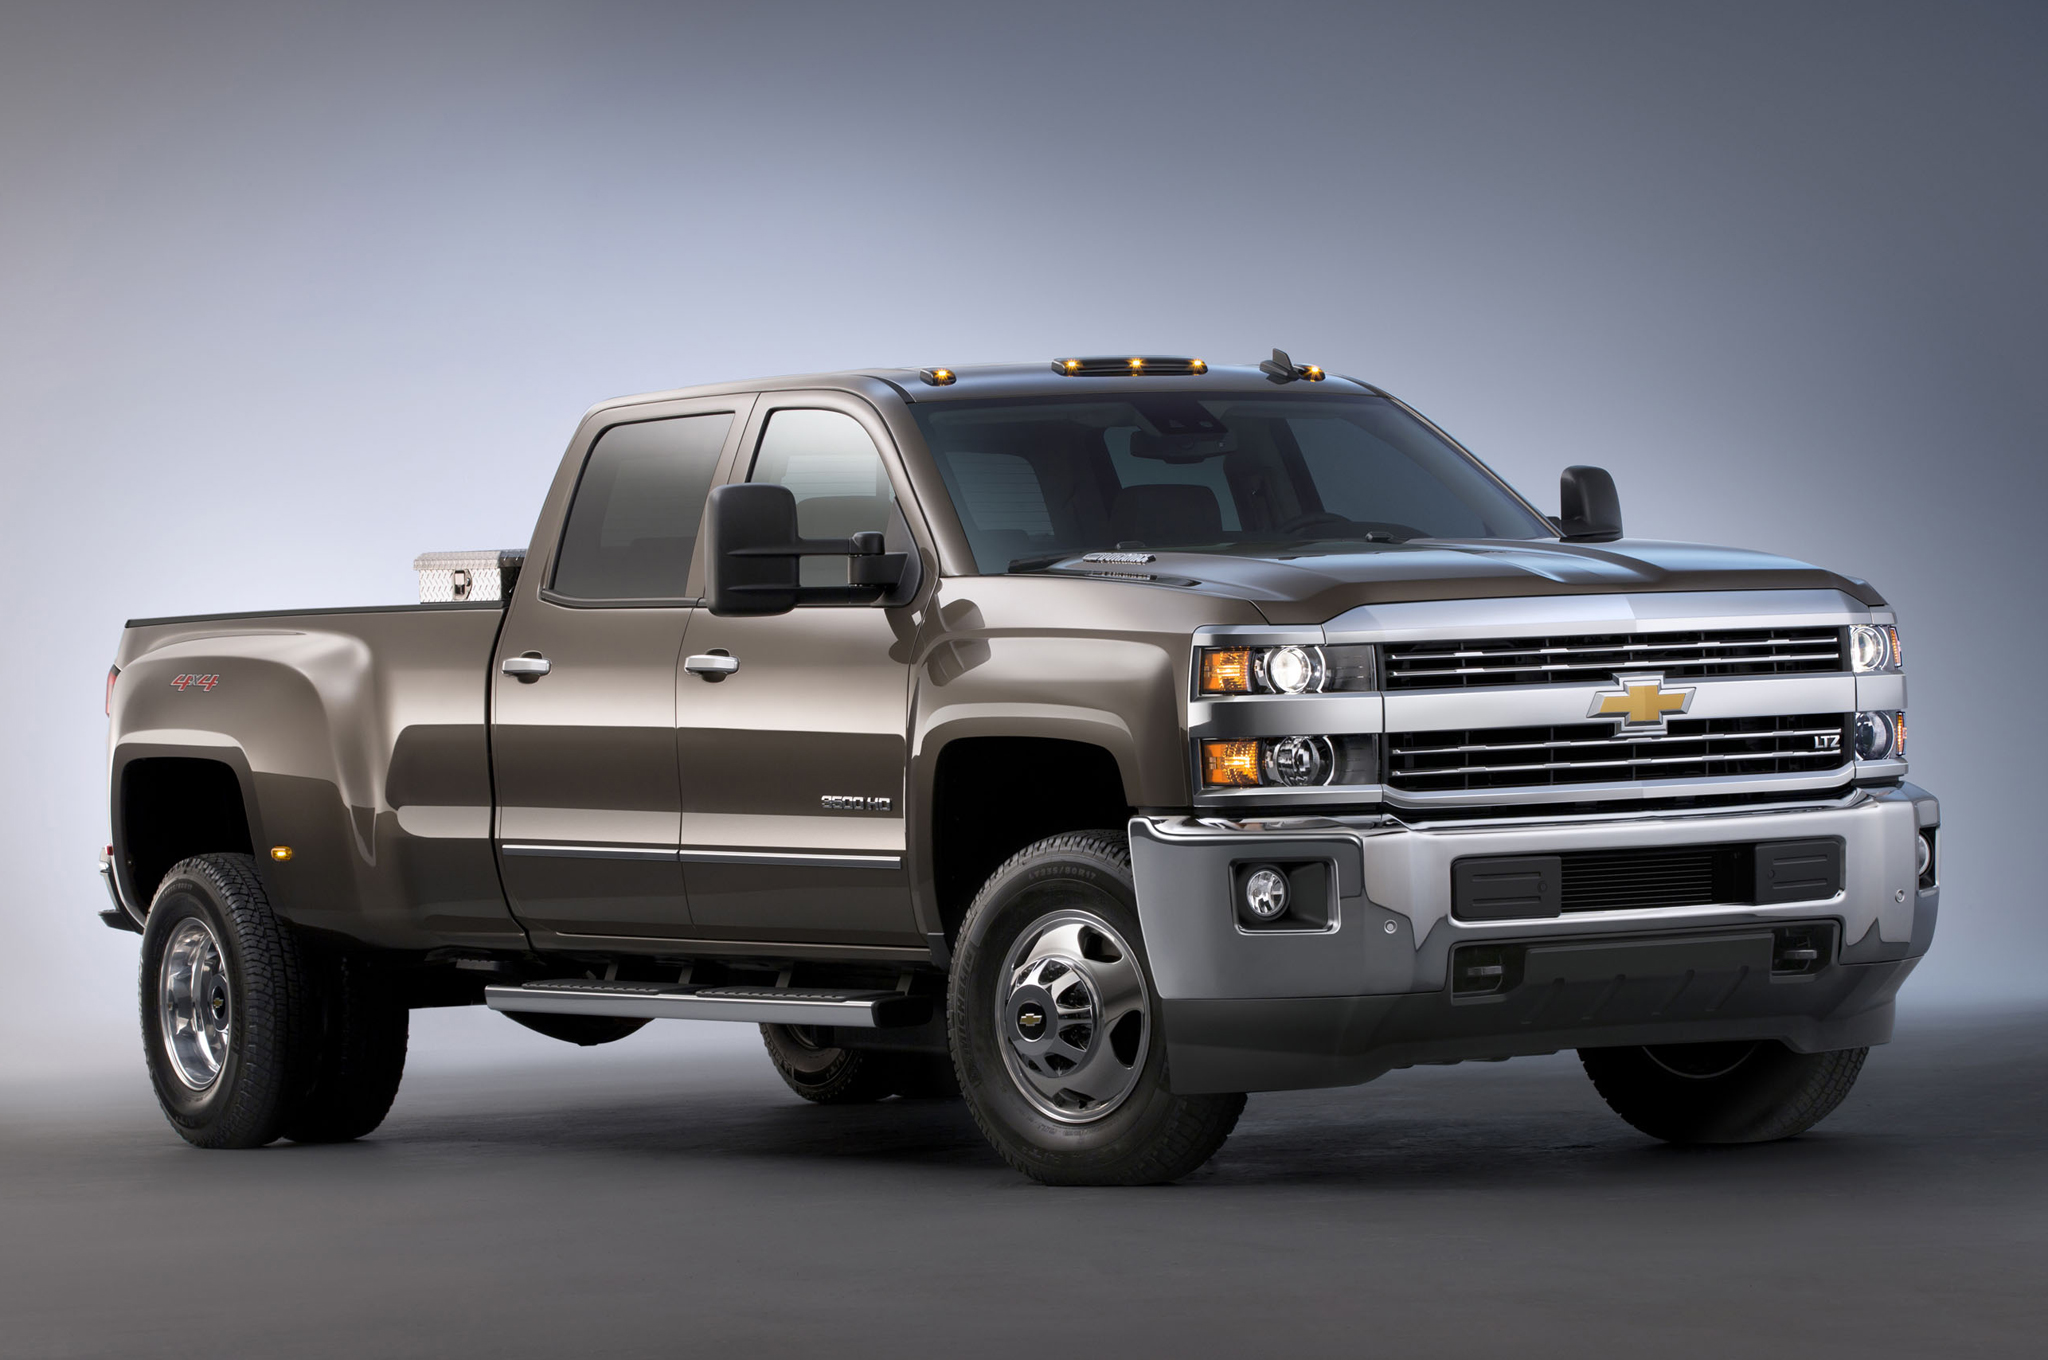 2015 Chevrolet Silverado 3500hd Photos Informations Articles 2006 Kodiak Wiring Diagram Schematic 8